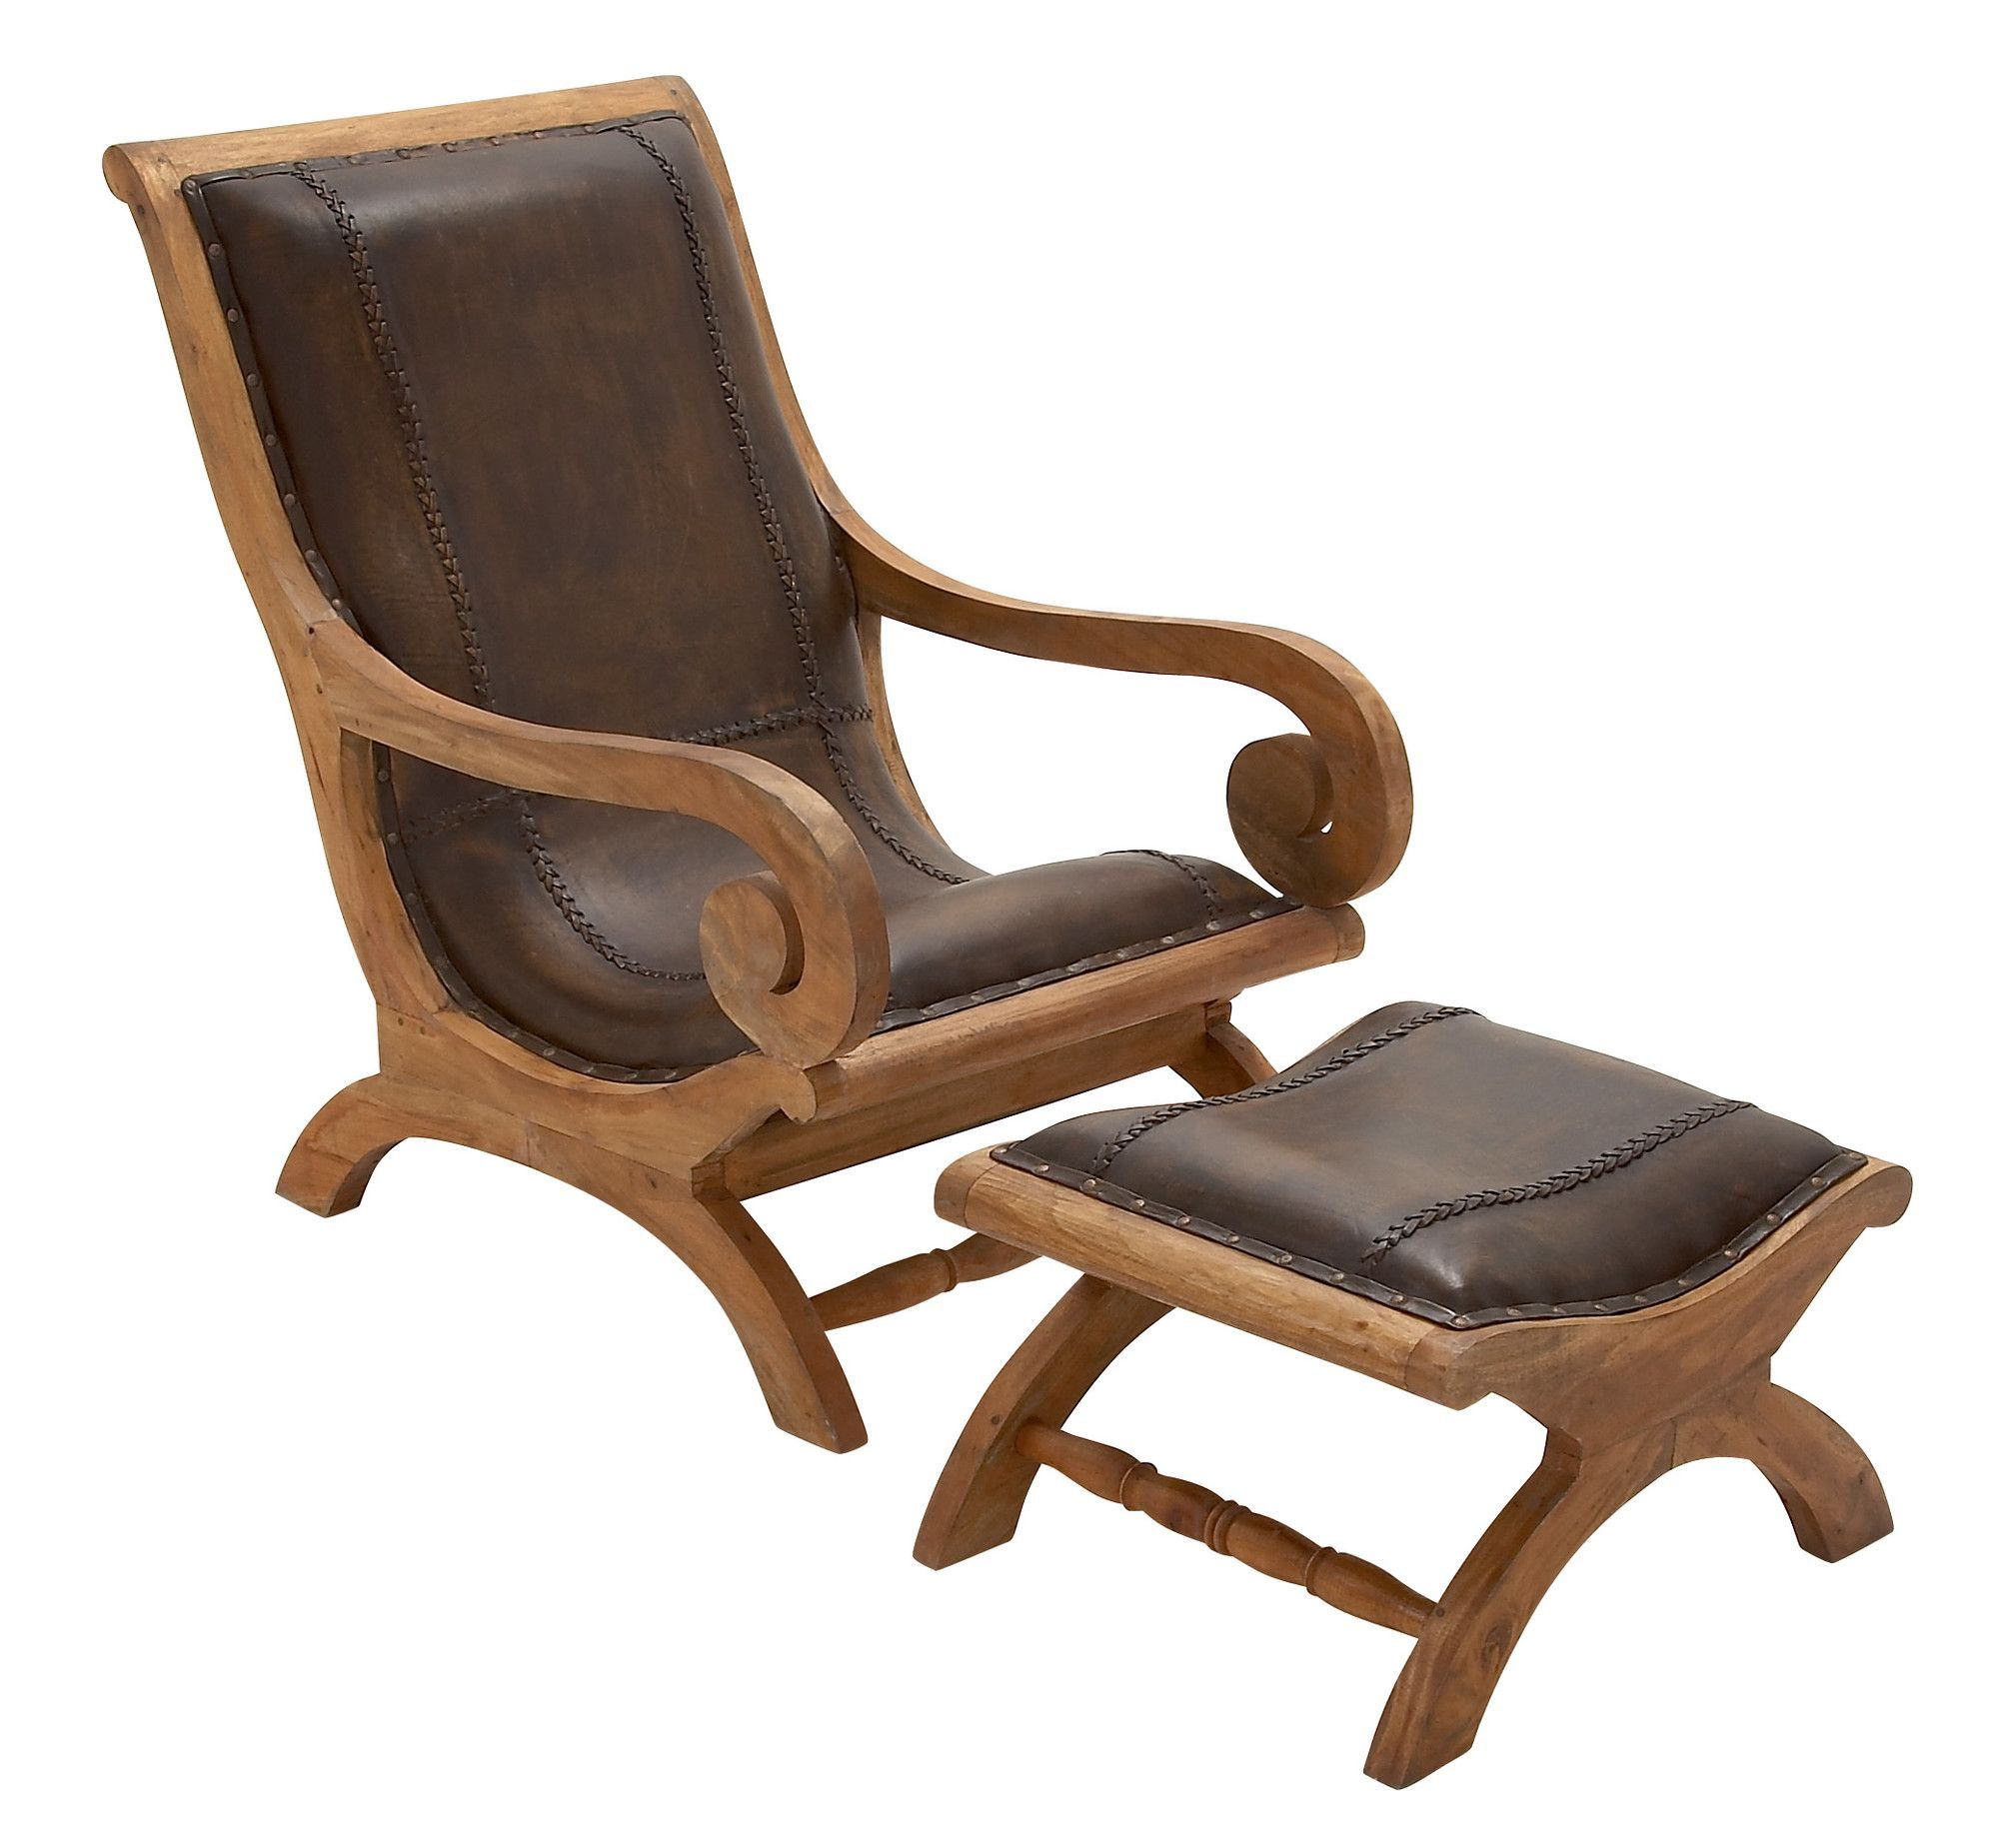 Kichatna Spire Armchair and Ottoman Leather chair with